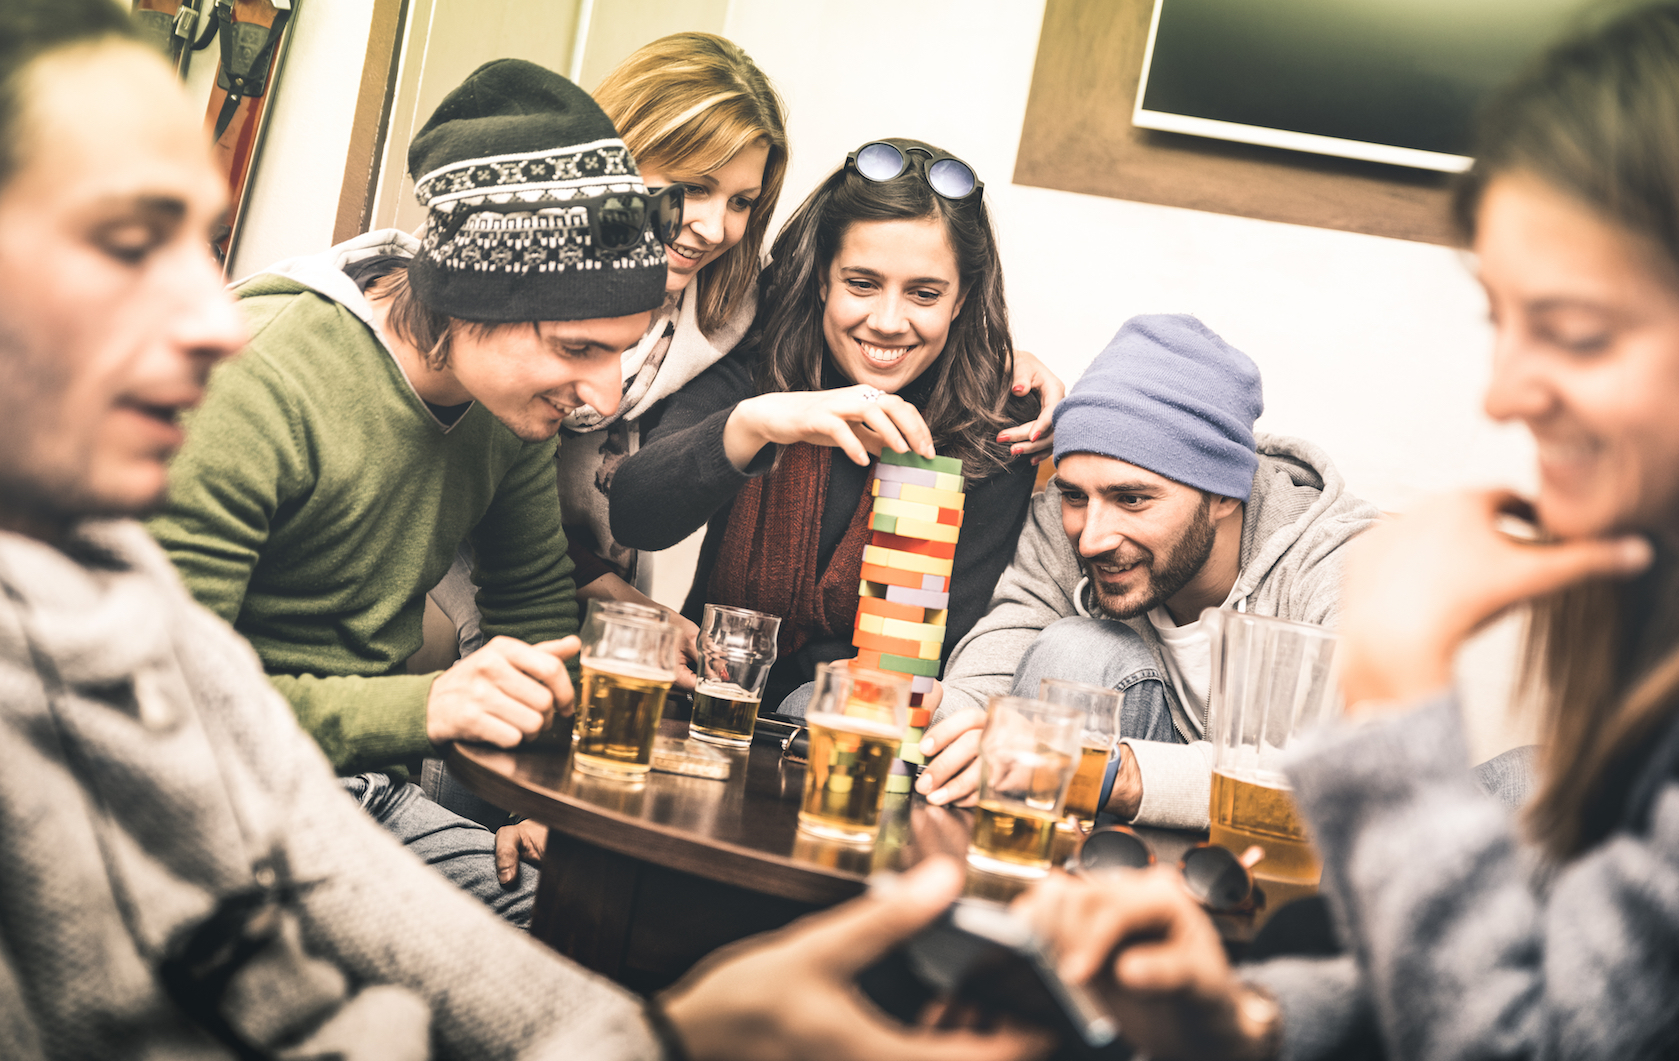 College students continually underestimate how obnoxious they are while drinking, according to a new study.